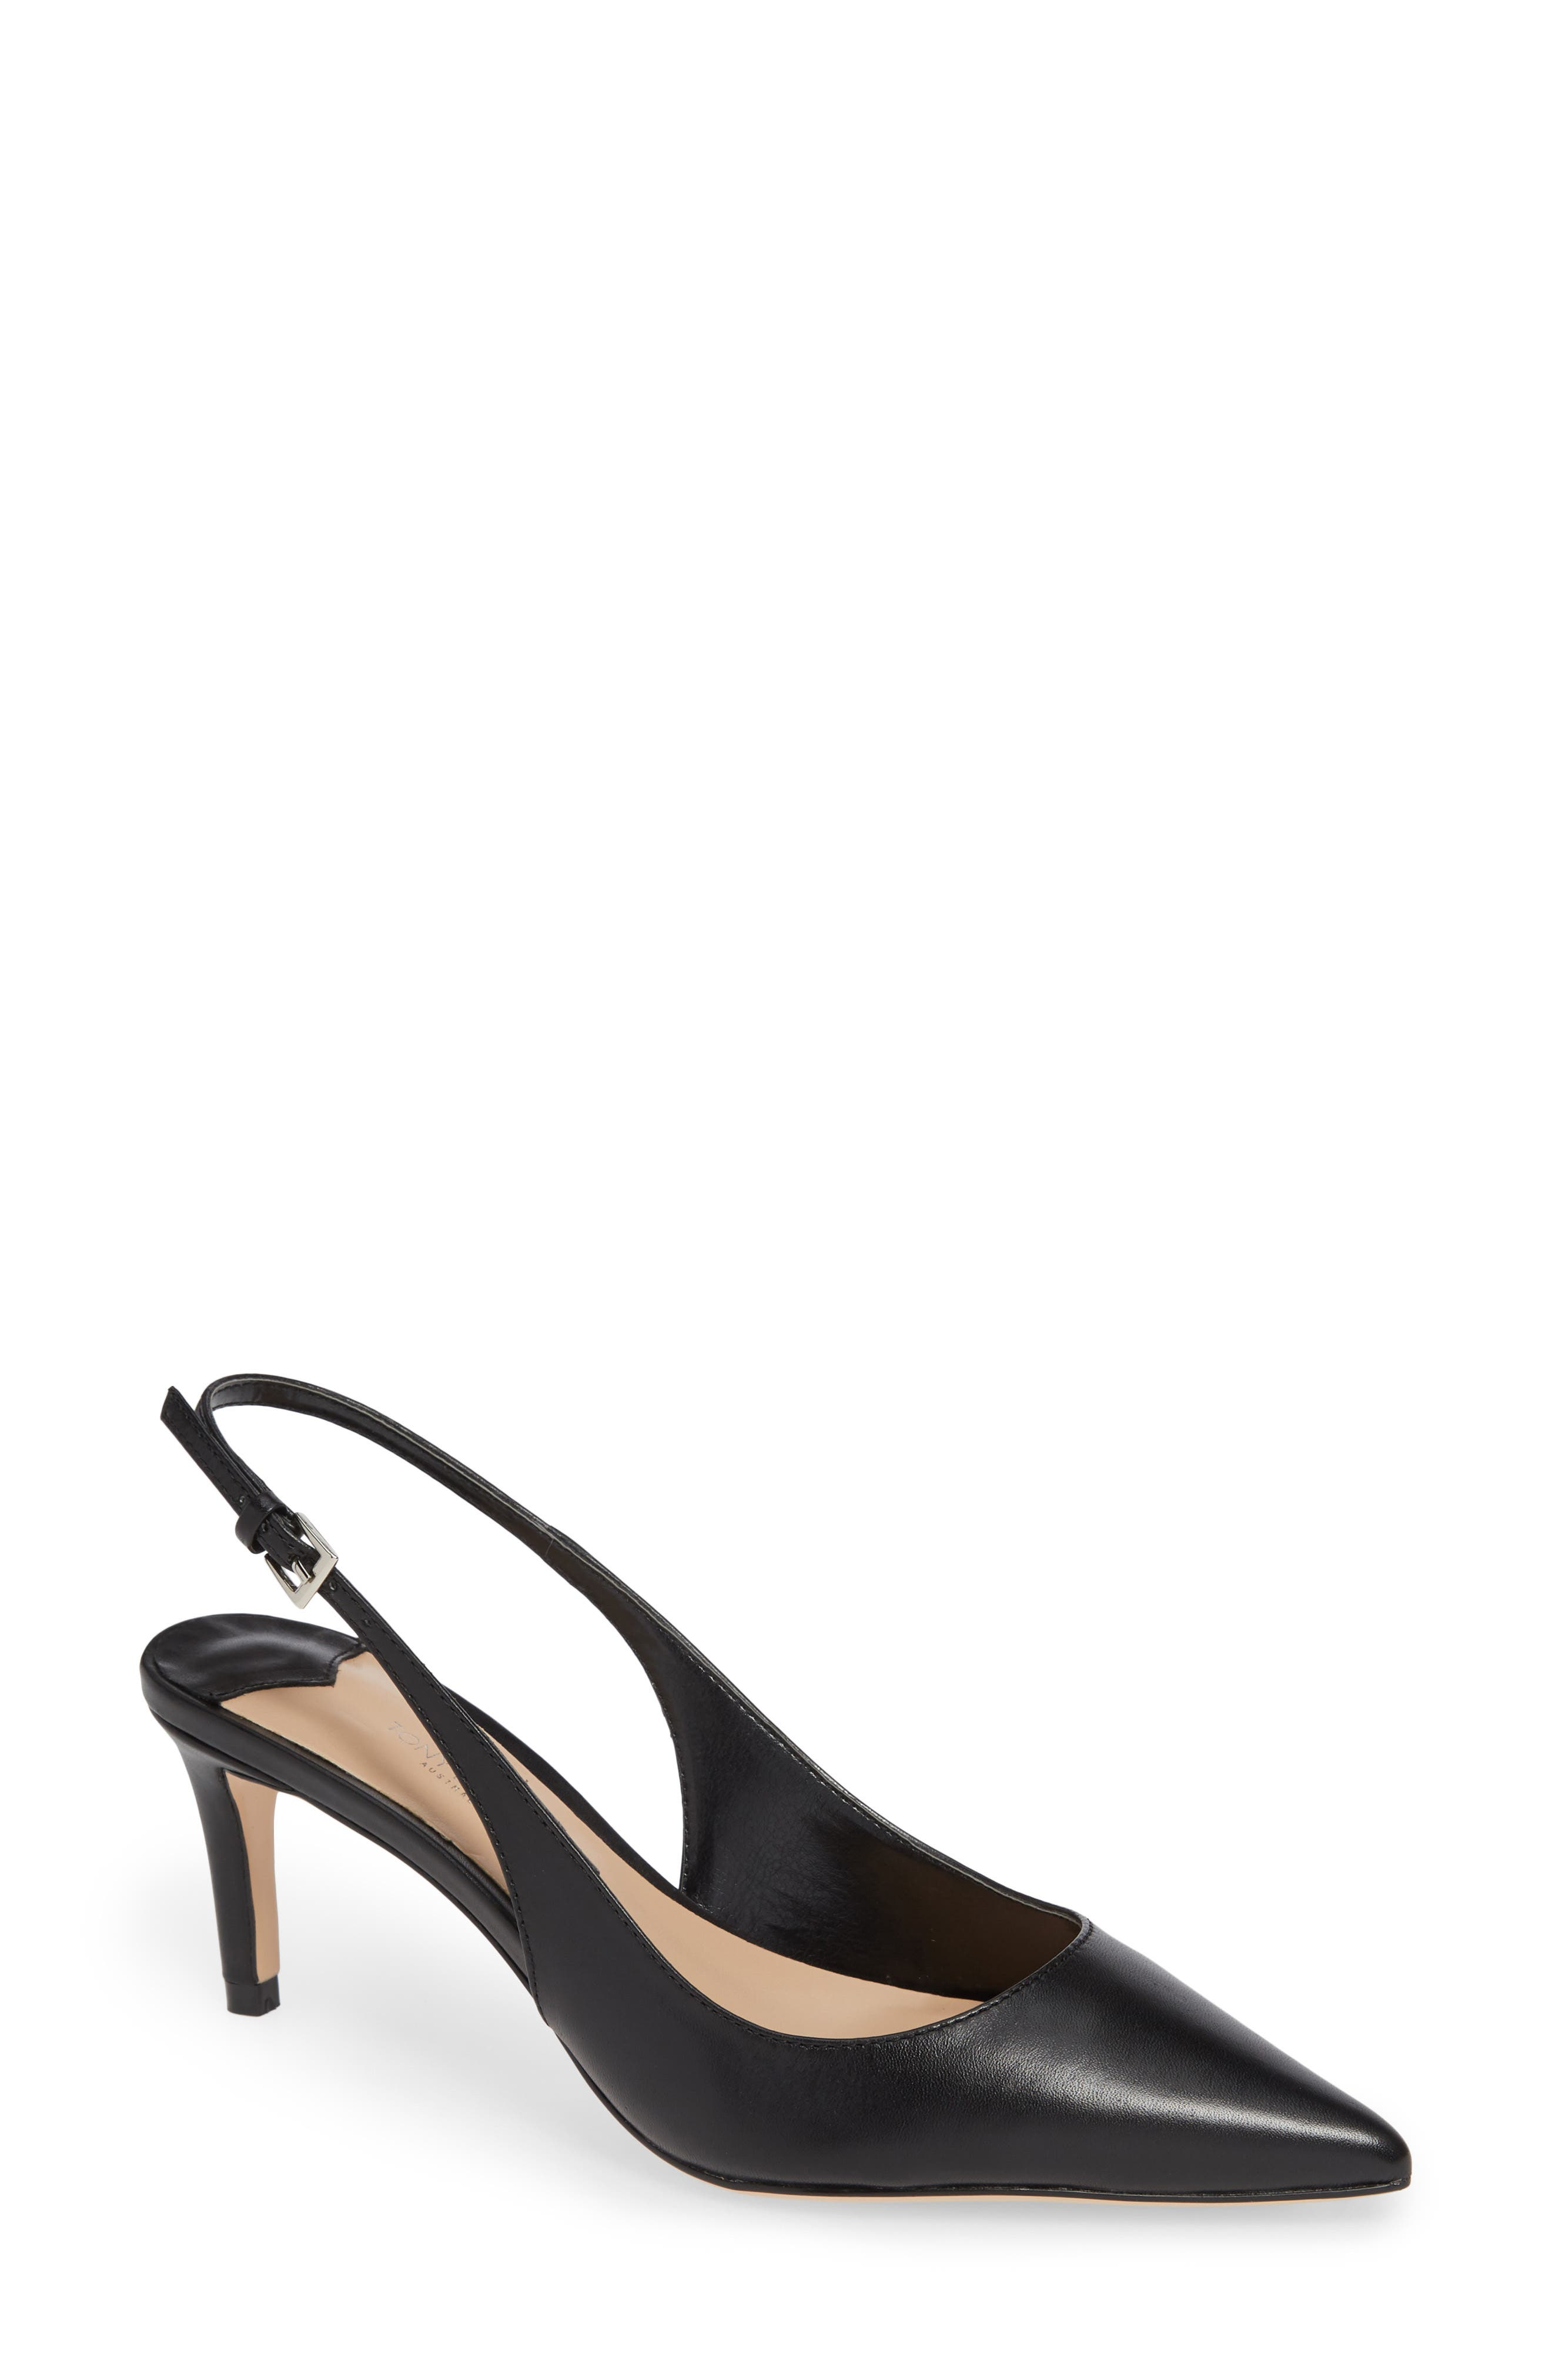 TONY BIANCO Slingback Pump in Black Como Leather